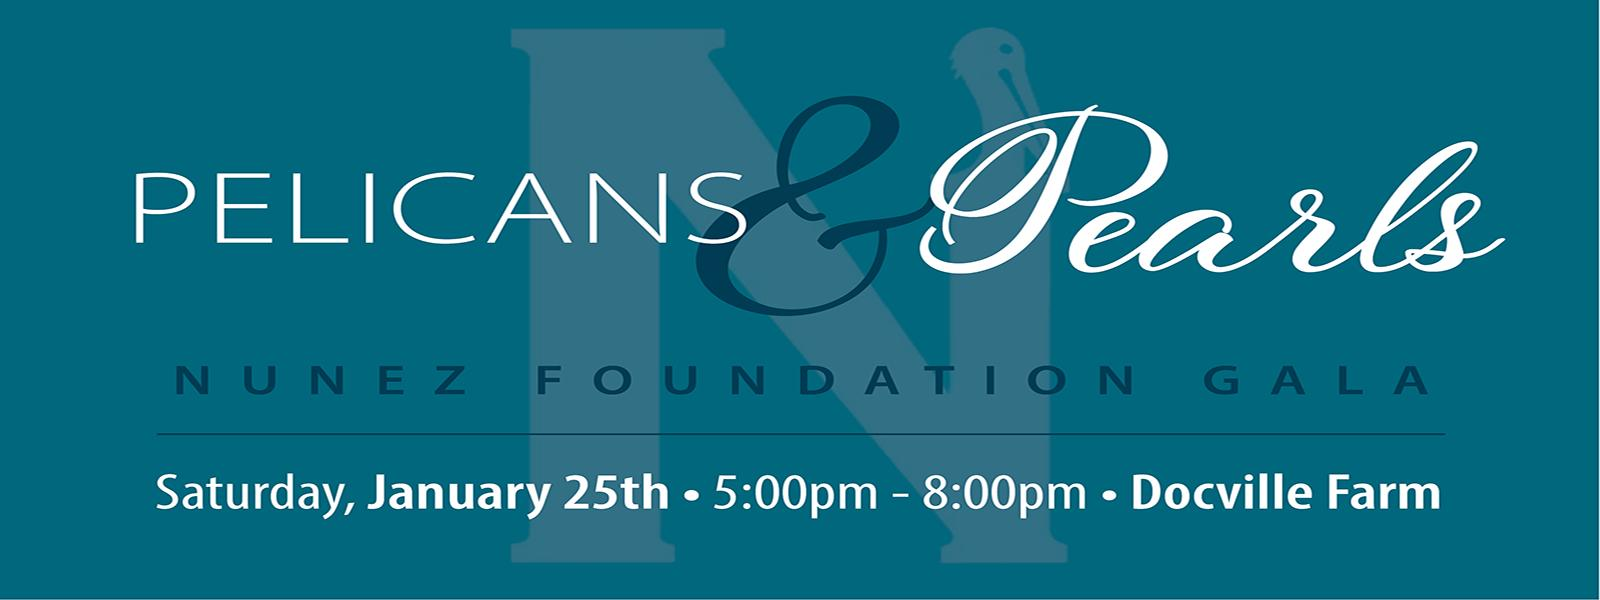 Pelicans & Pearls Nunez Foundation Gala, Click Here for More Information